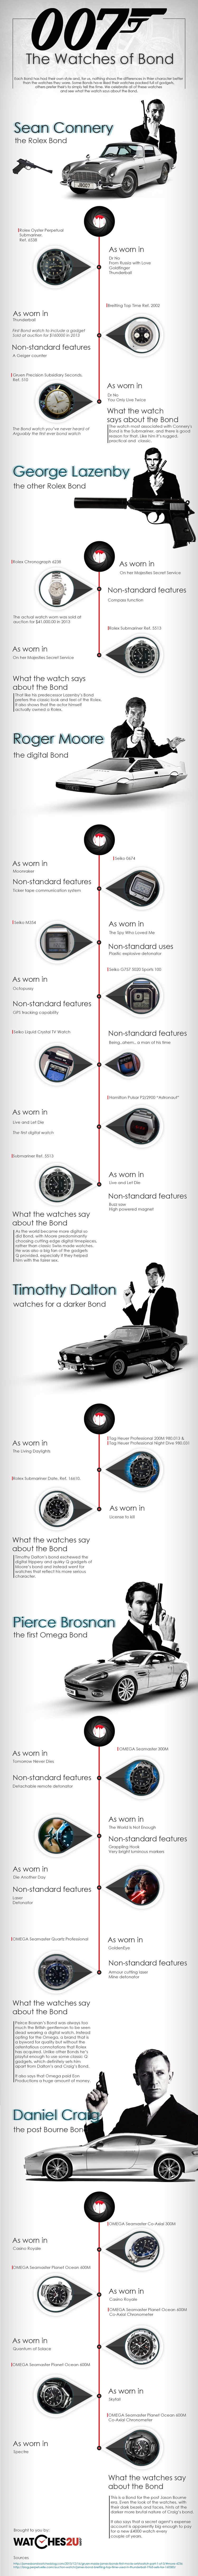 James Bond Watch Infographic